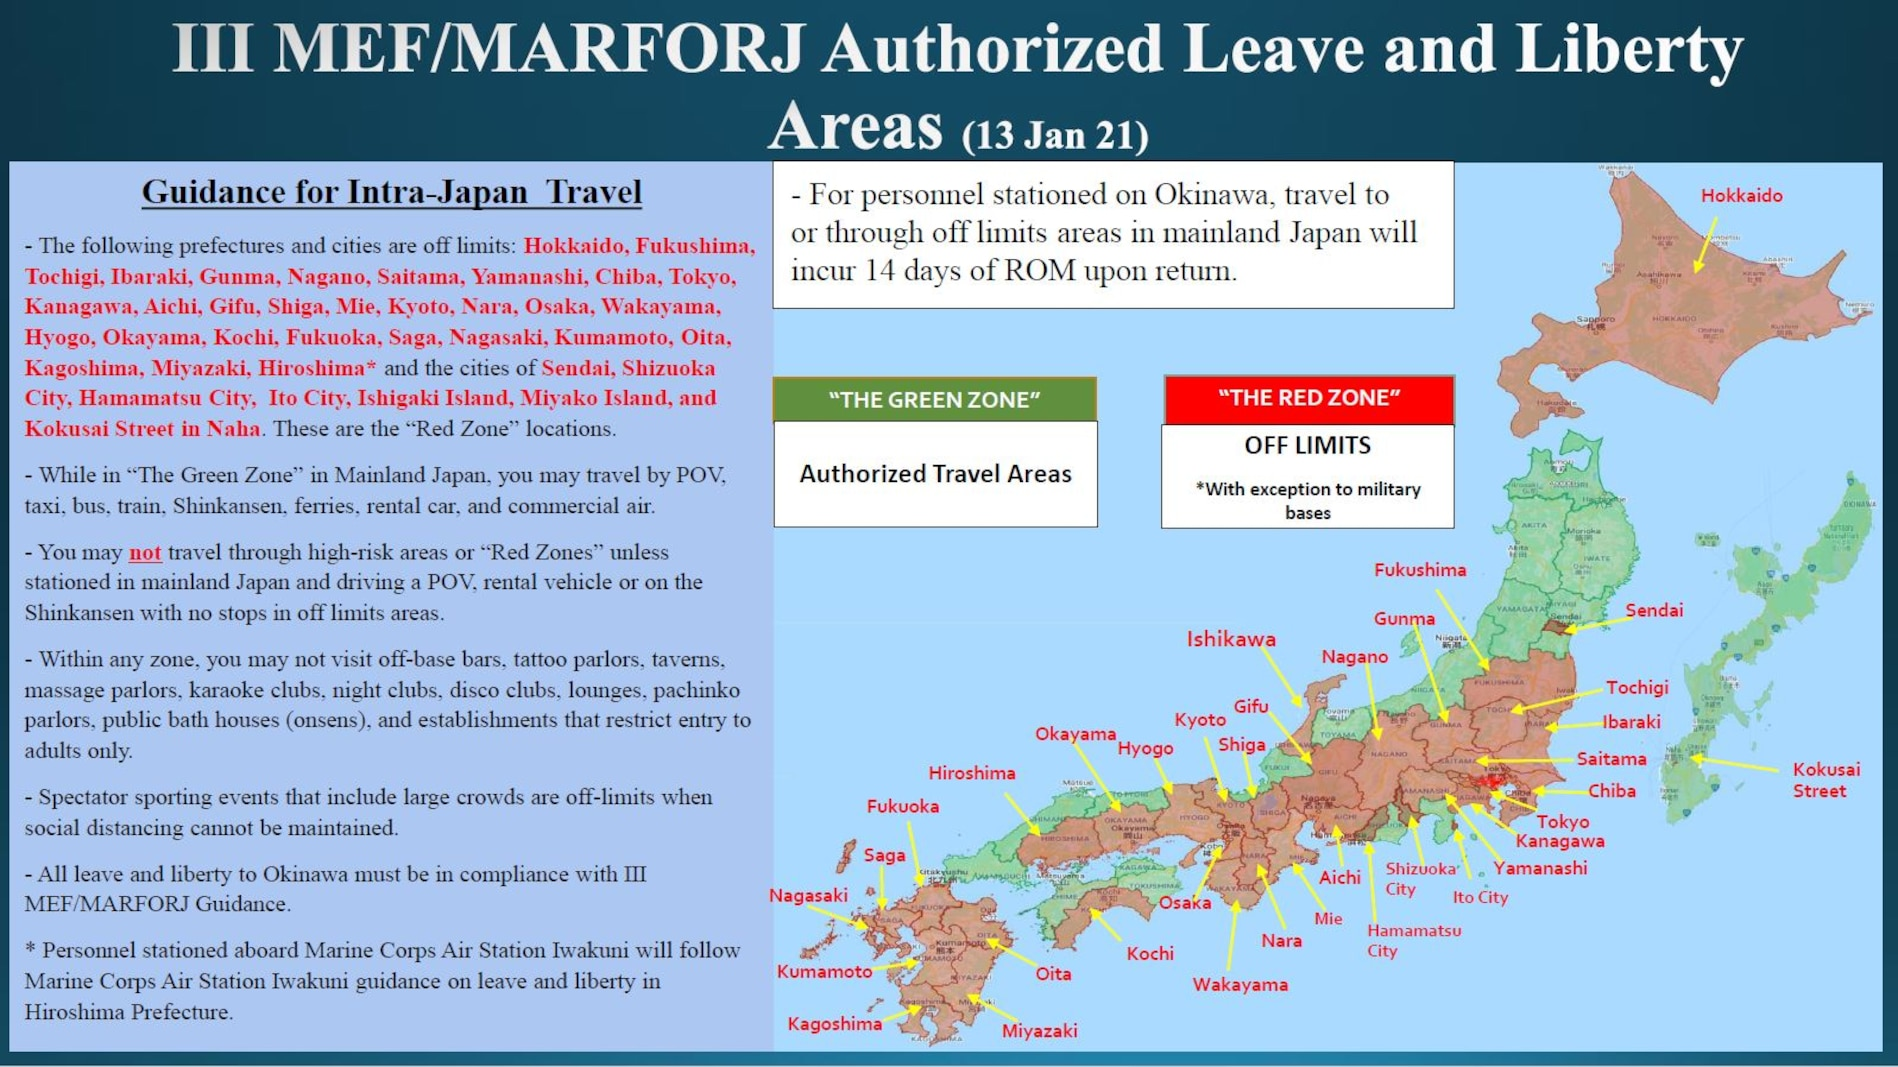 III MEF/MARFORJ Authorized Leave and Liberty Areas (13 Jan 21)